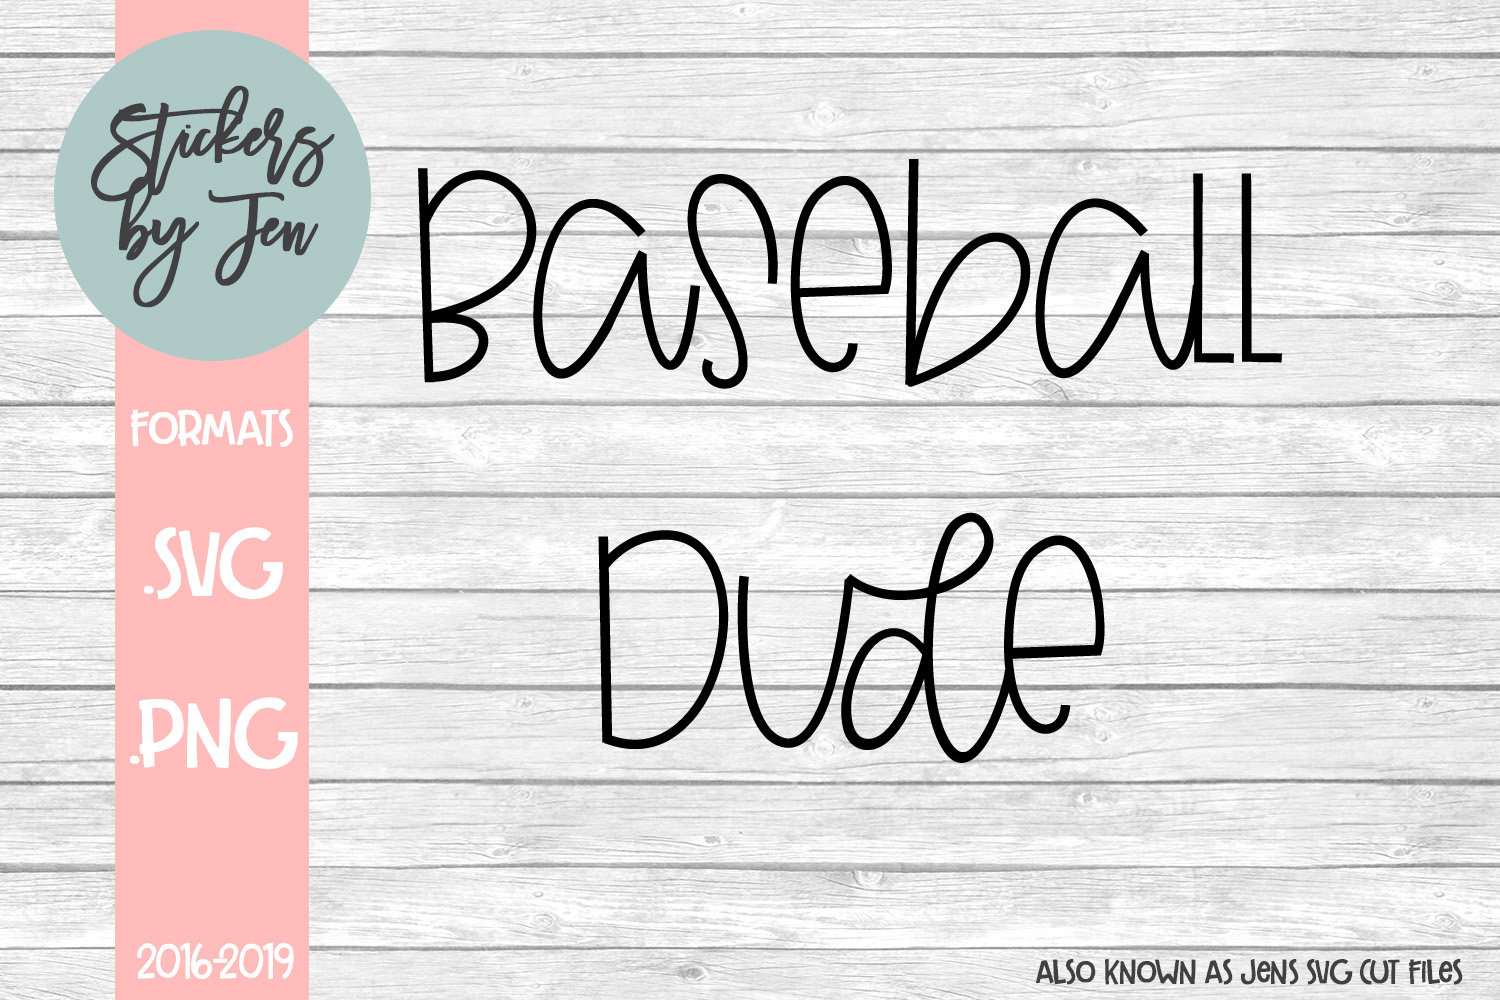 Download Free Baseball Dude Svg Graphic By Stickers By Jennifer Creative Fabrica for Cricut Explore, Silhouette and other cutting machines.